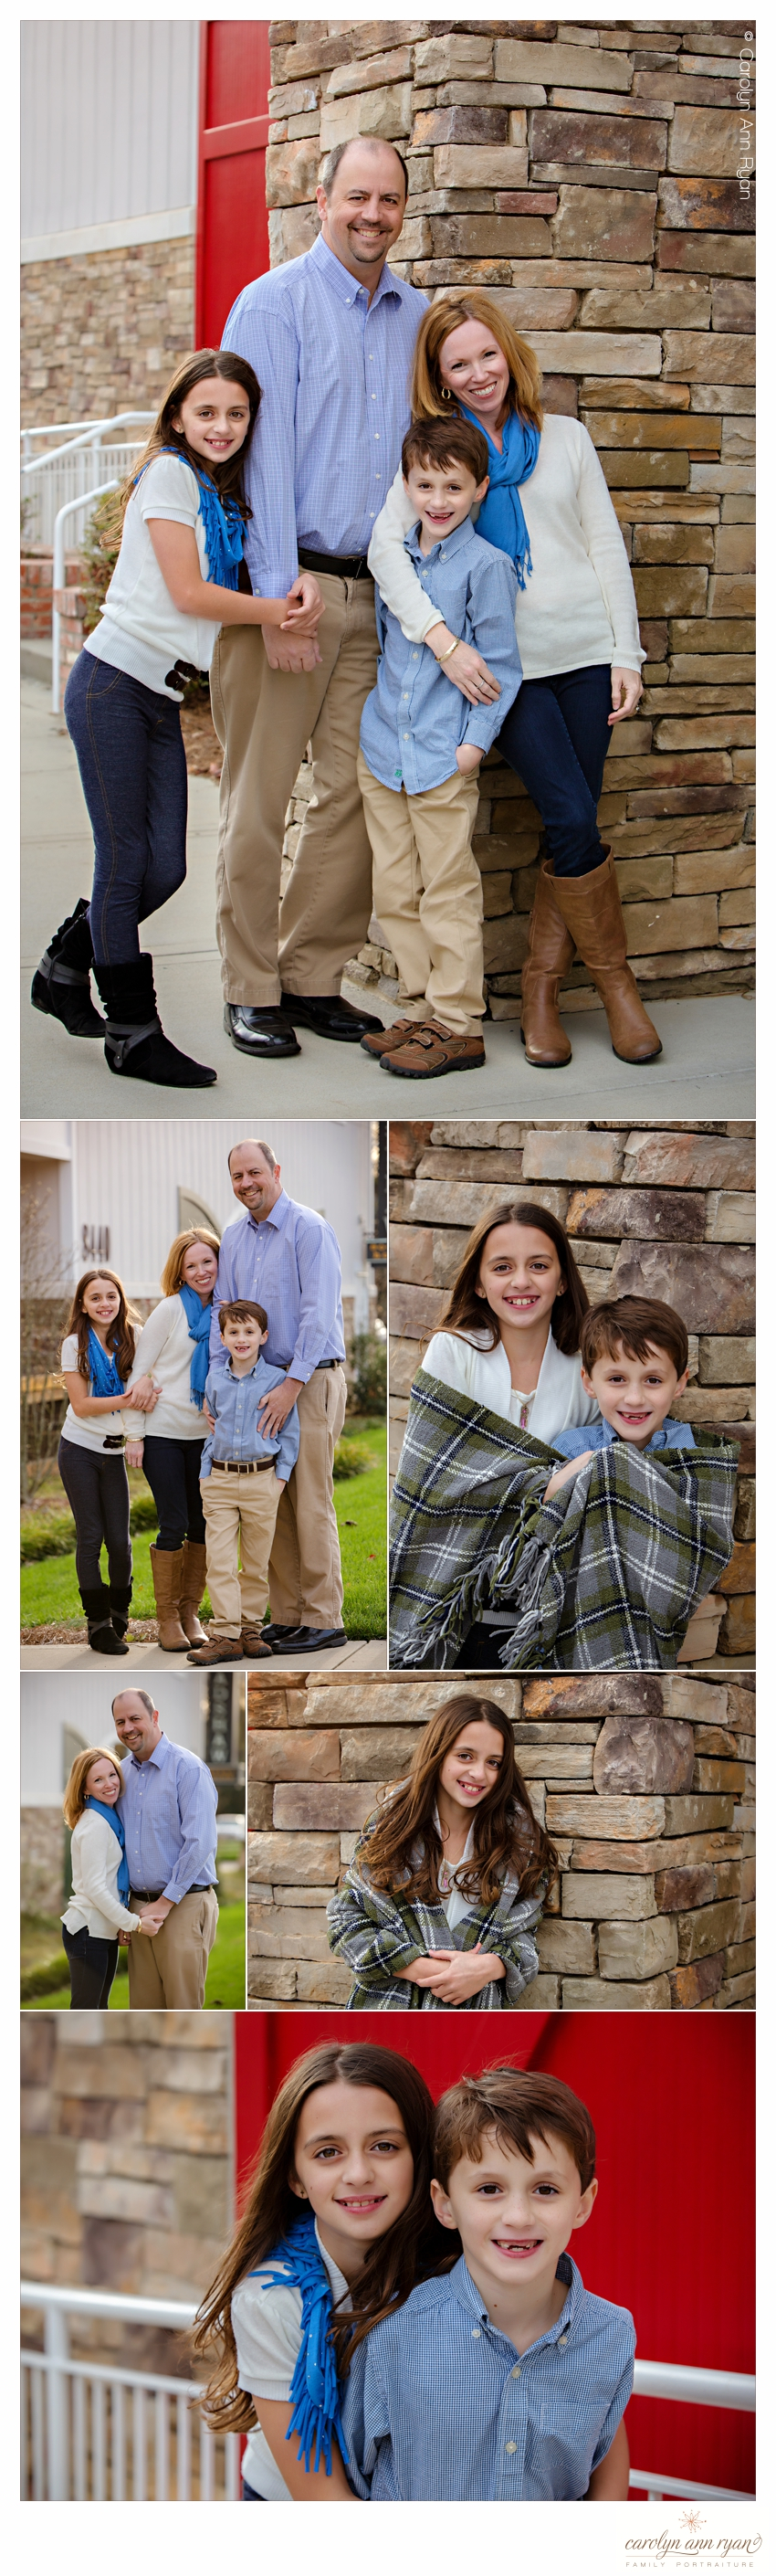 Outfit Suggestions for Family Portraits photographed by Carolyn Ann Ryan in Charlotte, NC